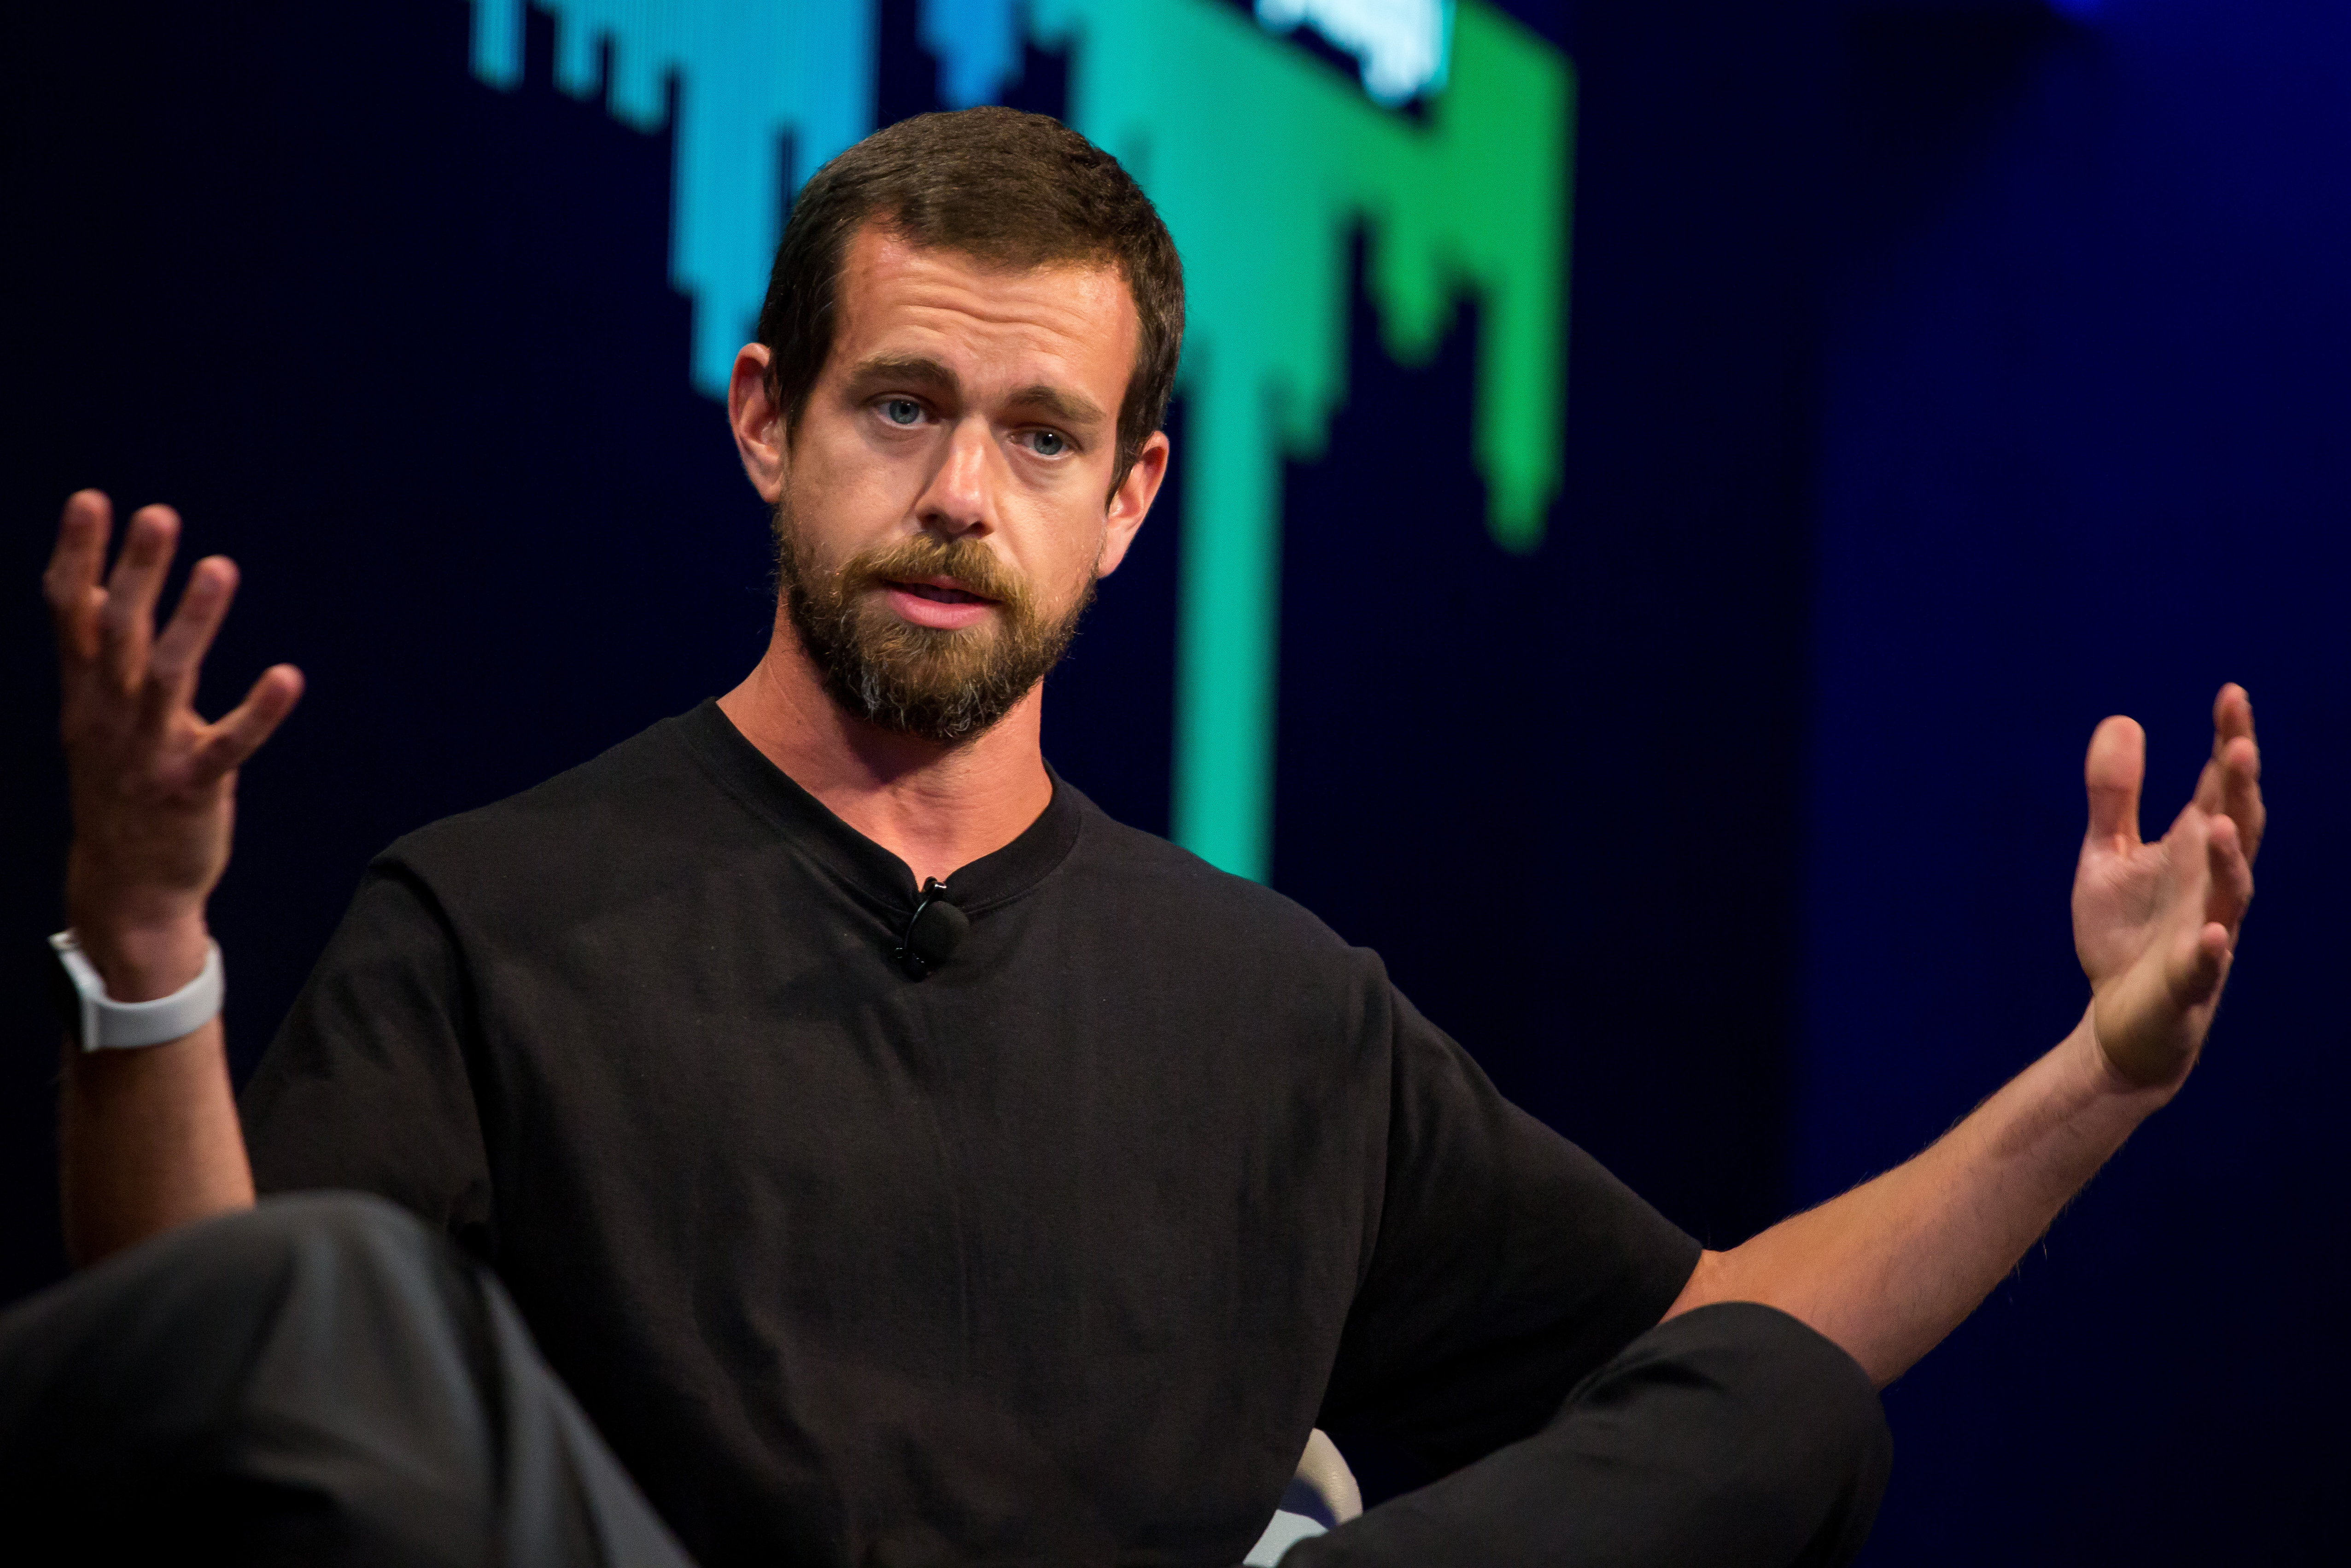 Jack Dorsey is having the Worst Year Ever.